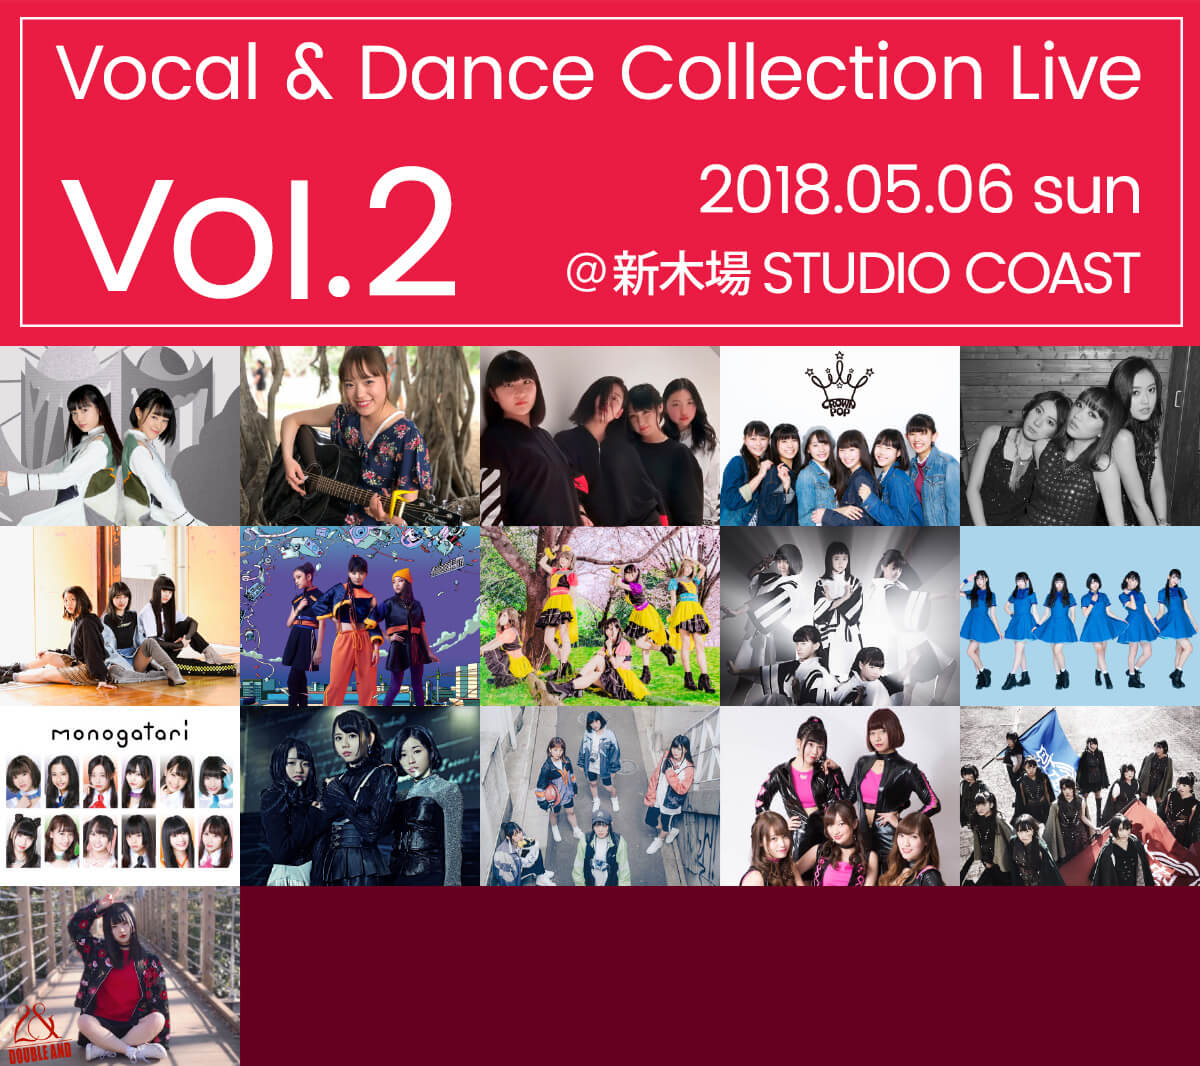 Vocal & Dance Collection Vol.2